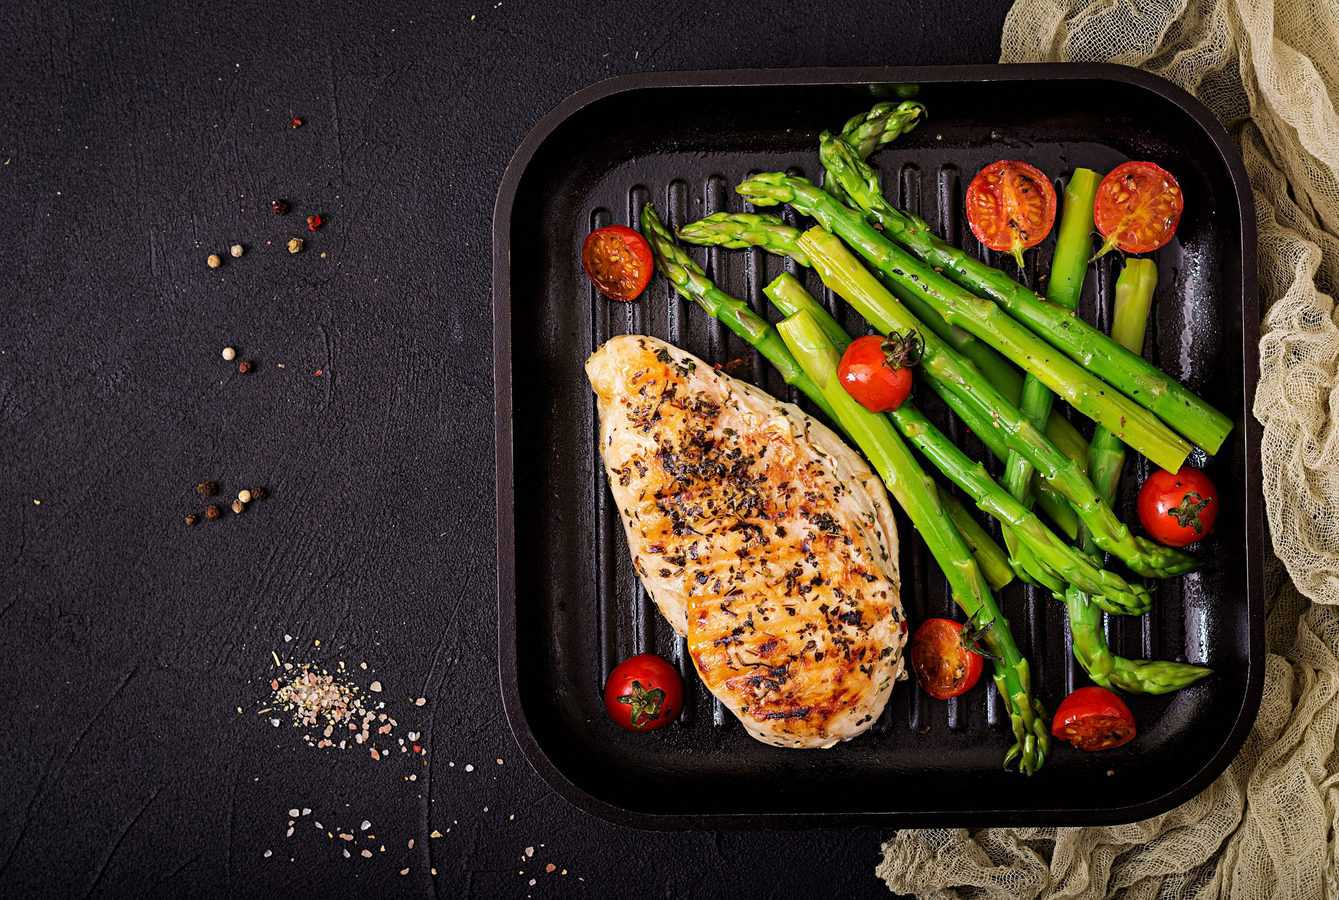 grilled chicken and asparagus with montreal steak seasoning